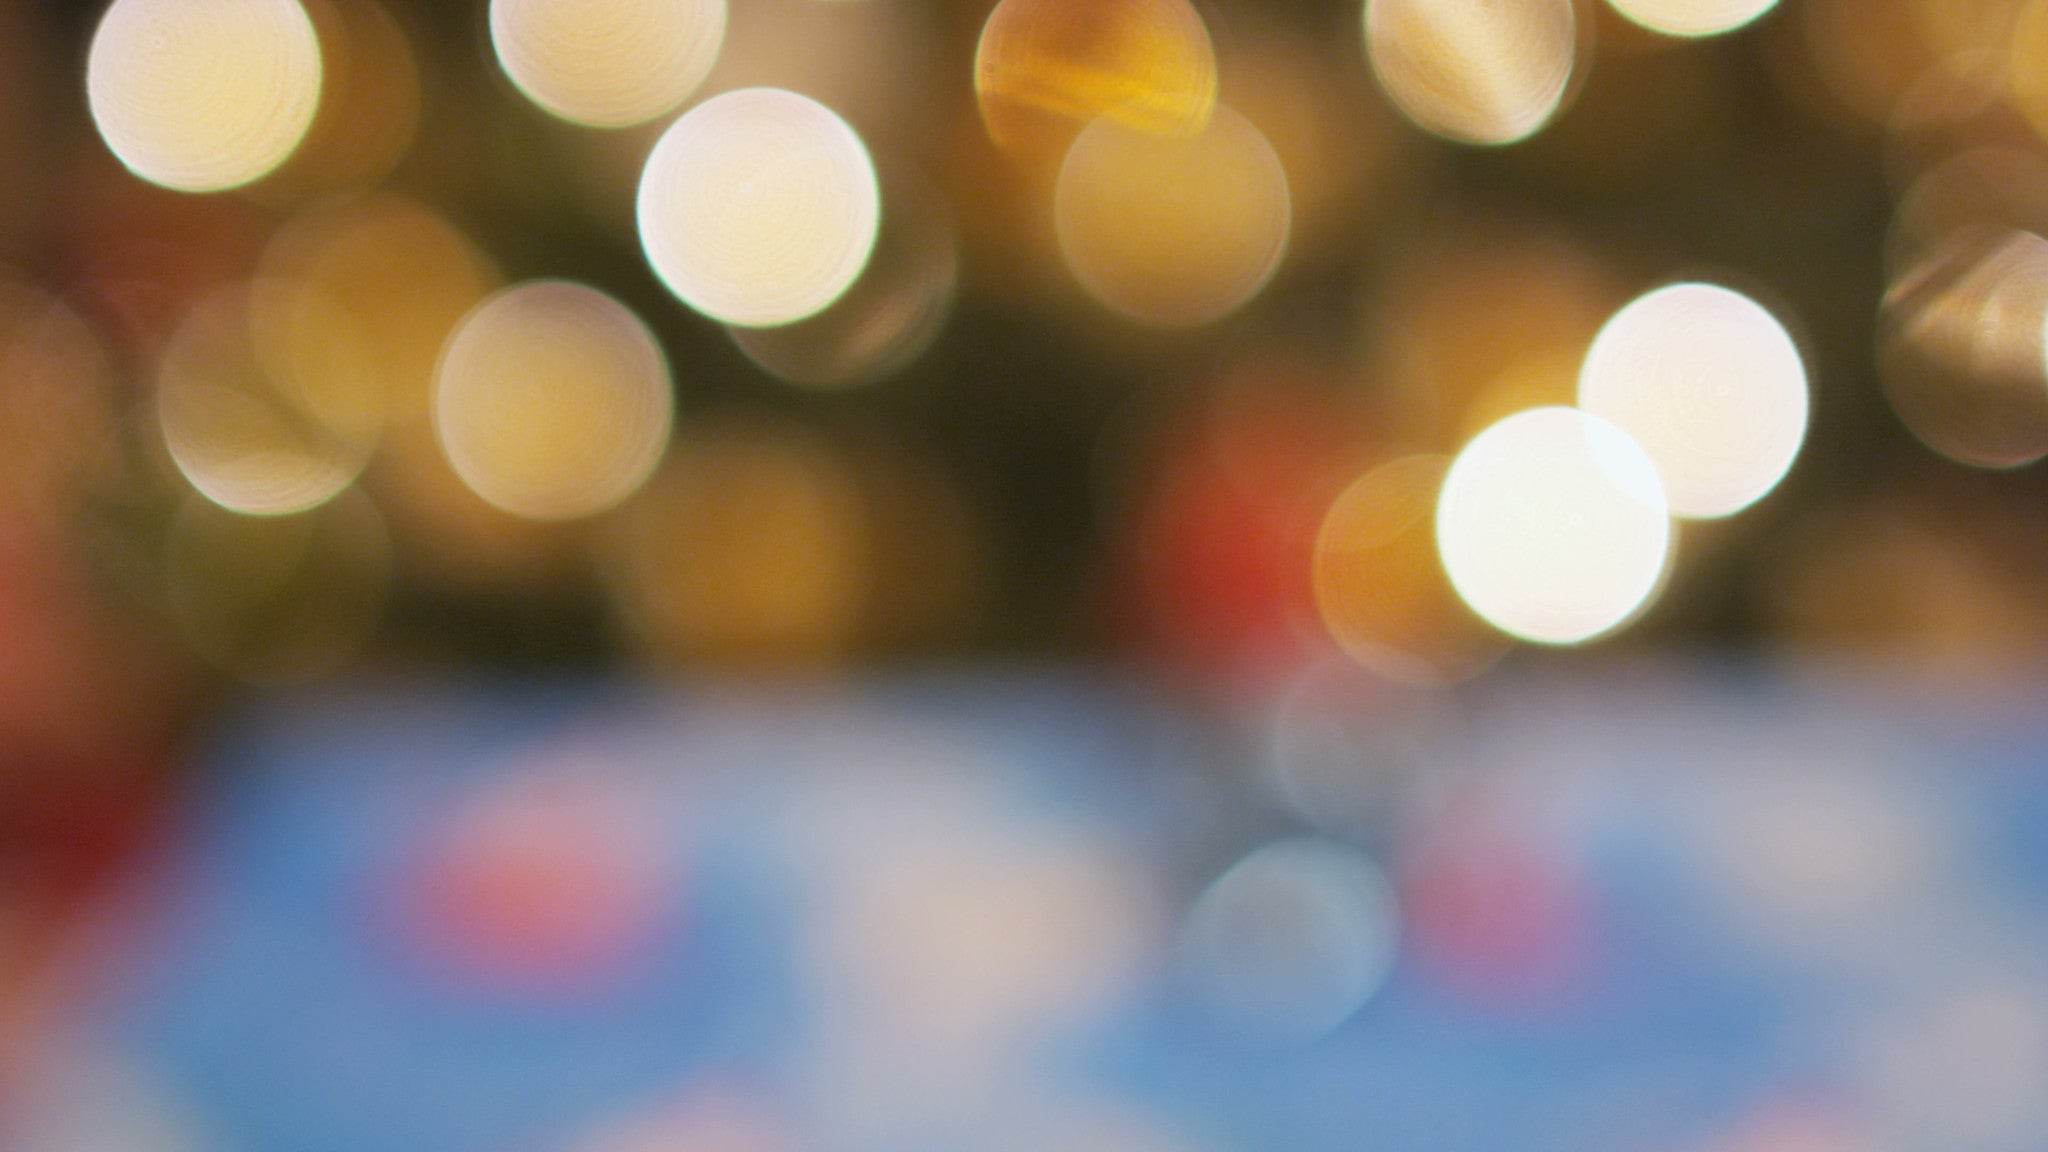 Free 4K stock video of holiday lights out of focus bokeh stock footage